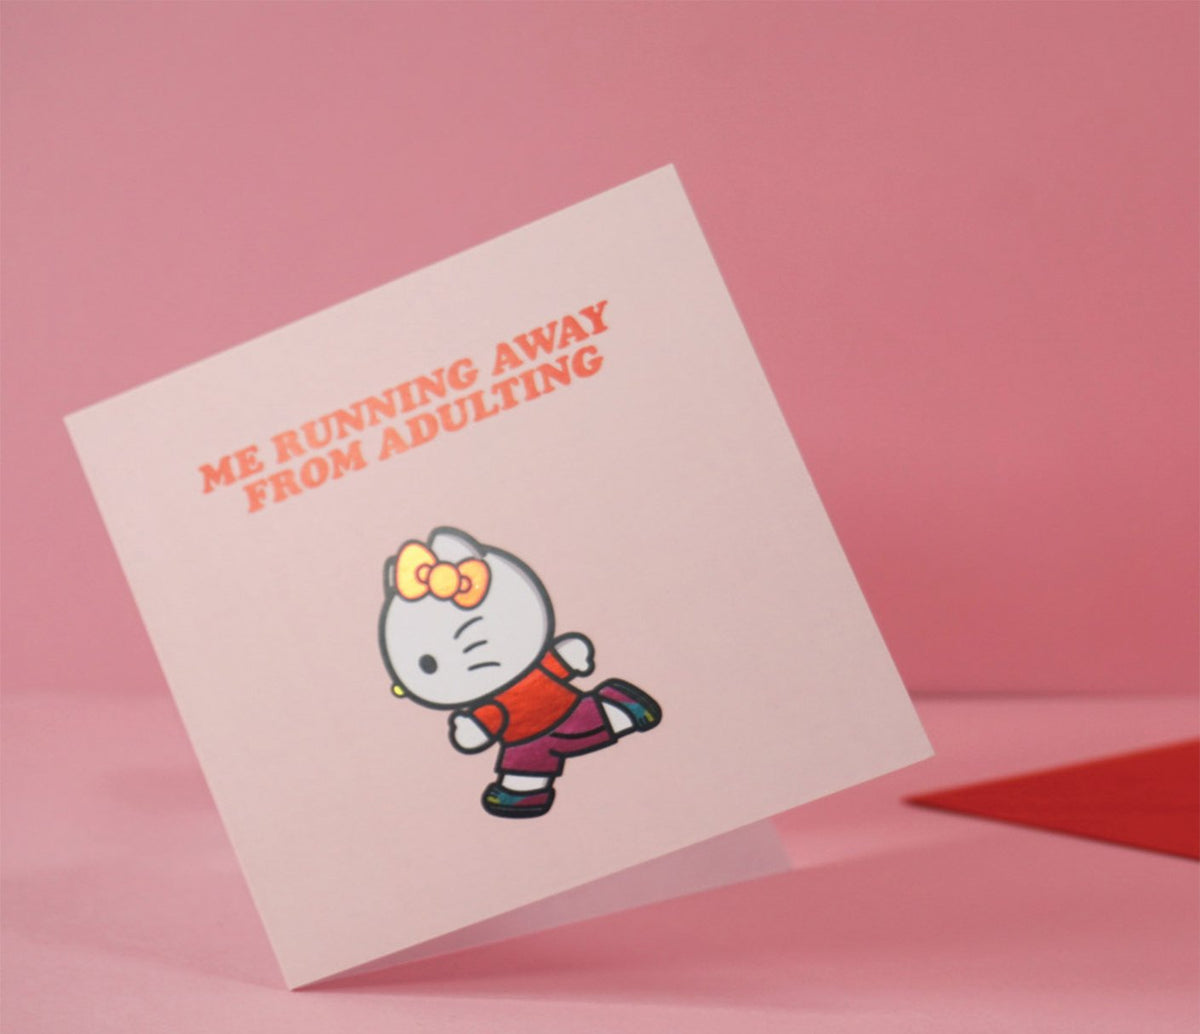 Jolly Awesome x Hello Kitty Greeting Card: Adulting